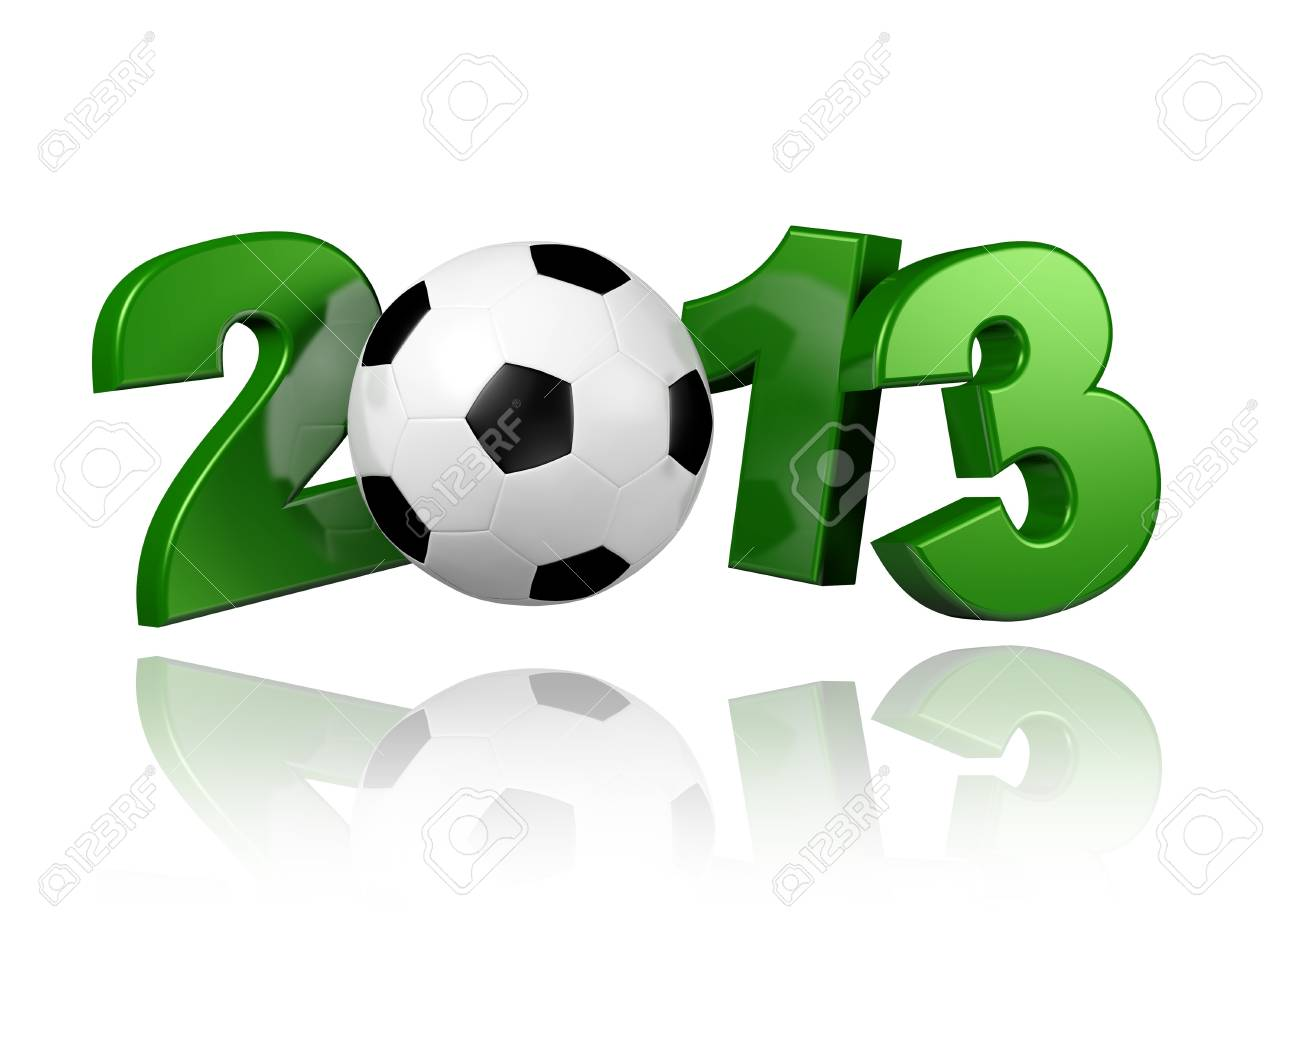 Football 2013 with a White Background - 13963403